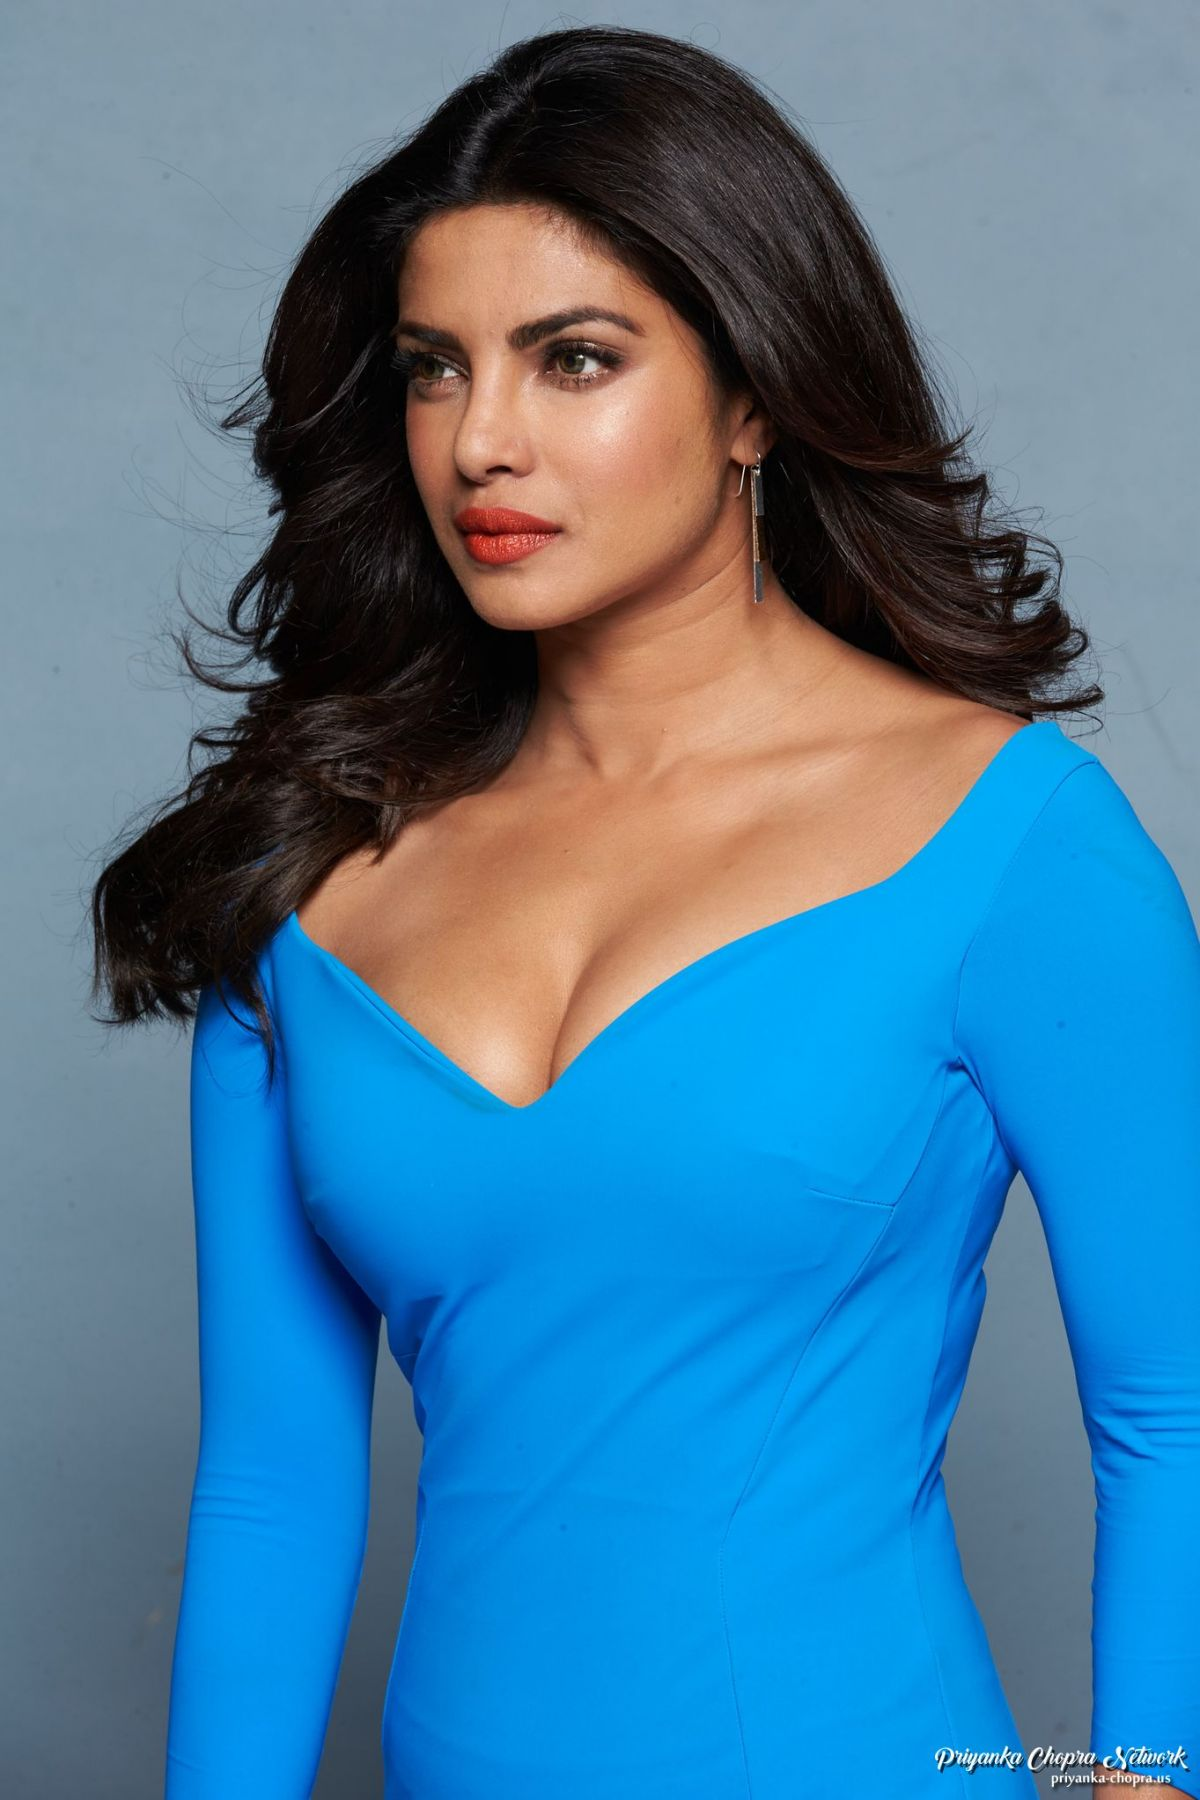 priyanka chopra - photo #4